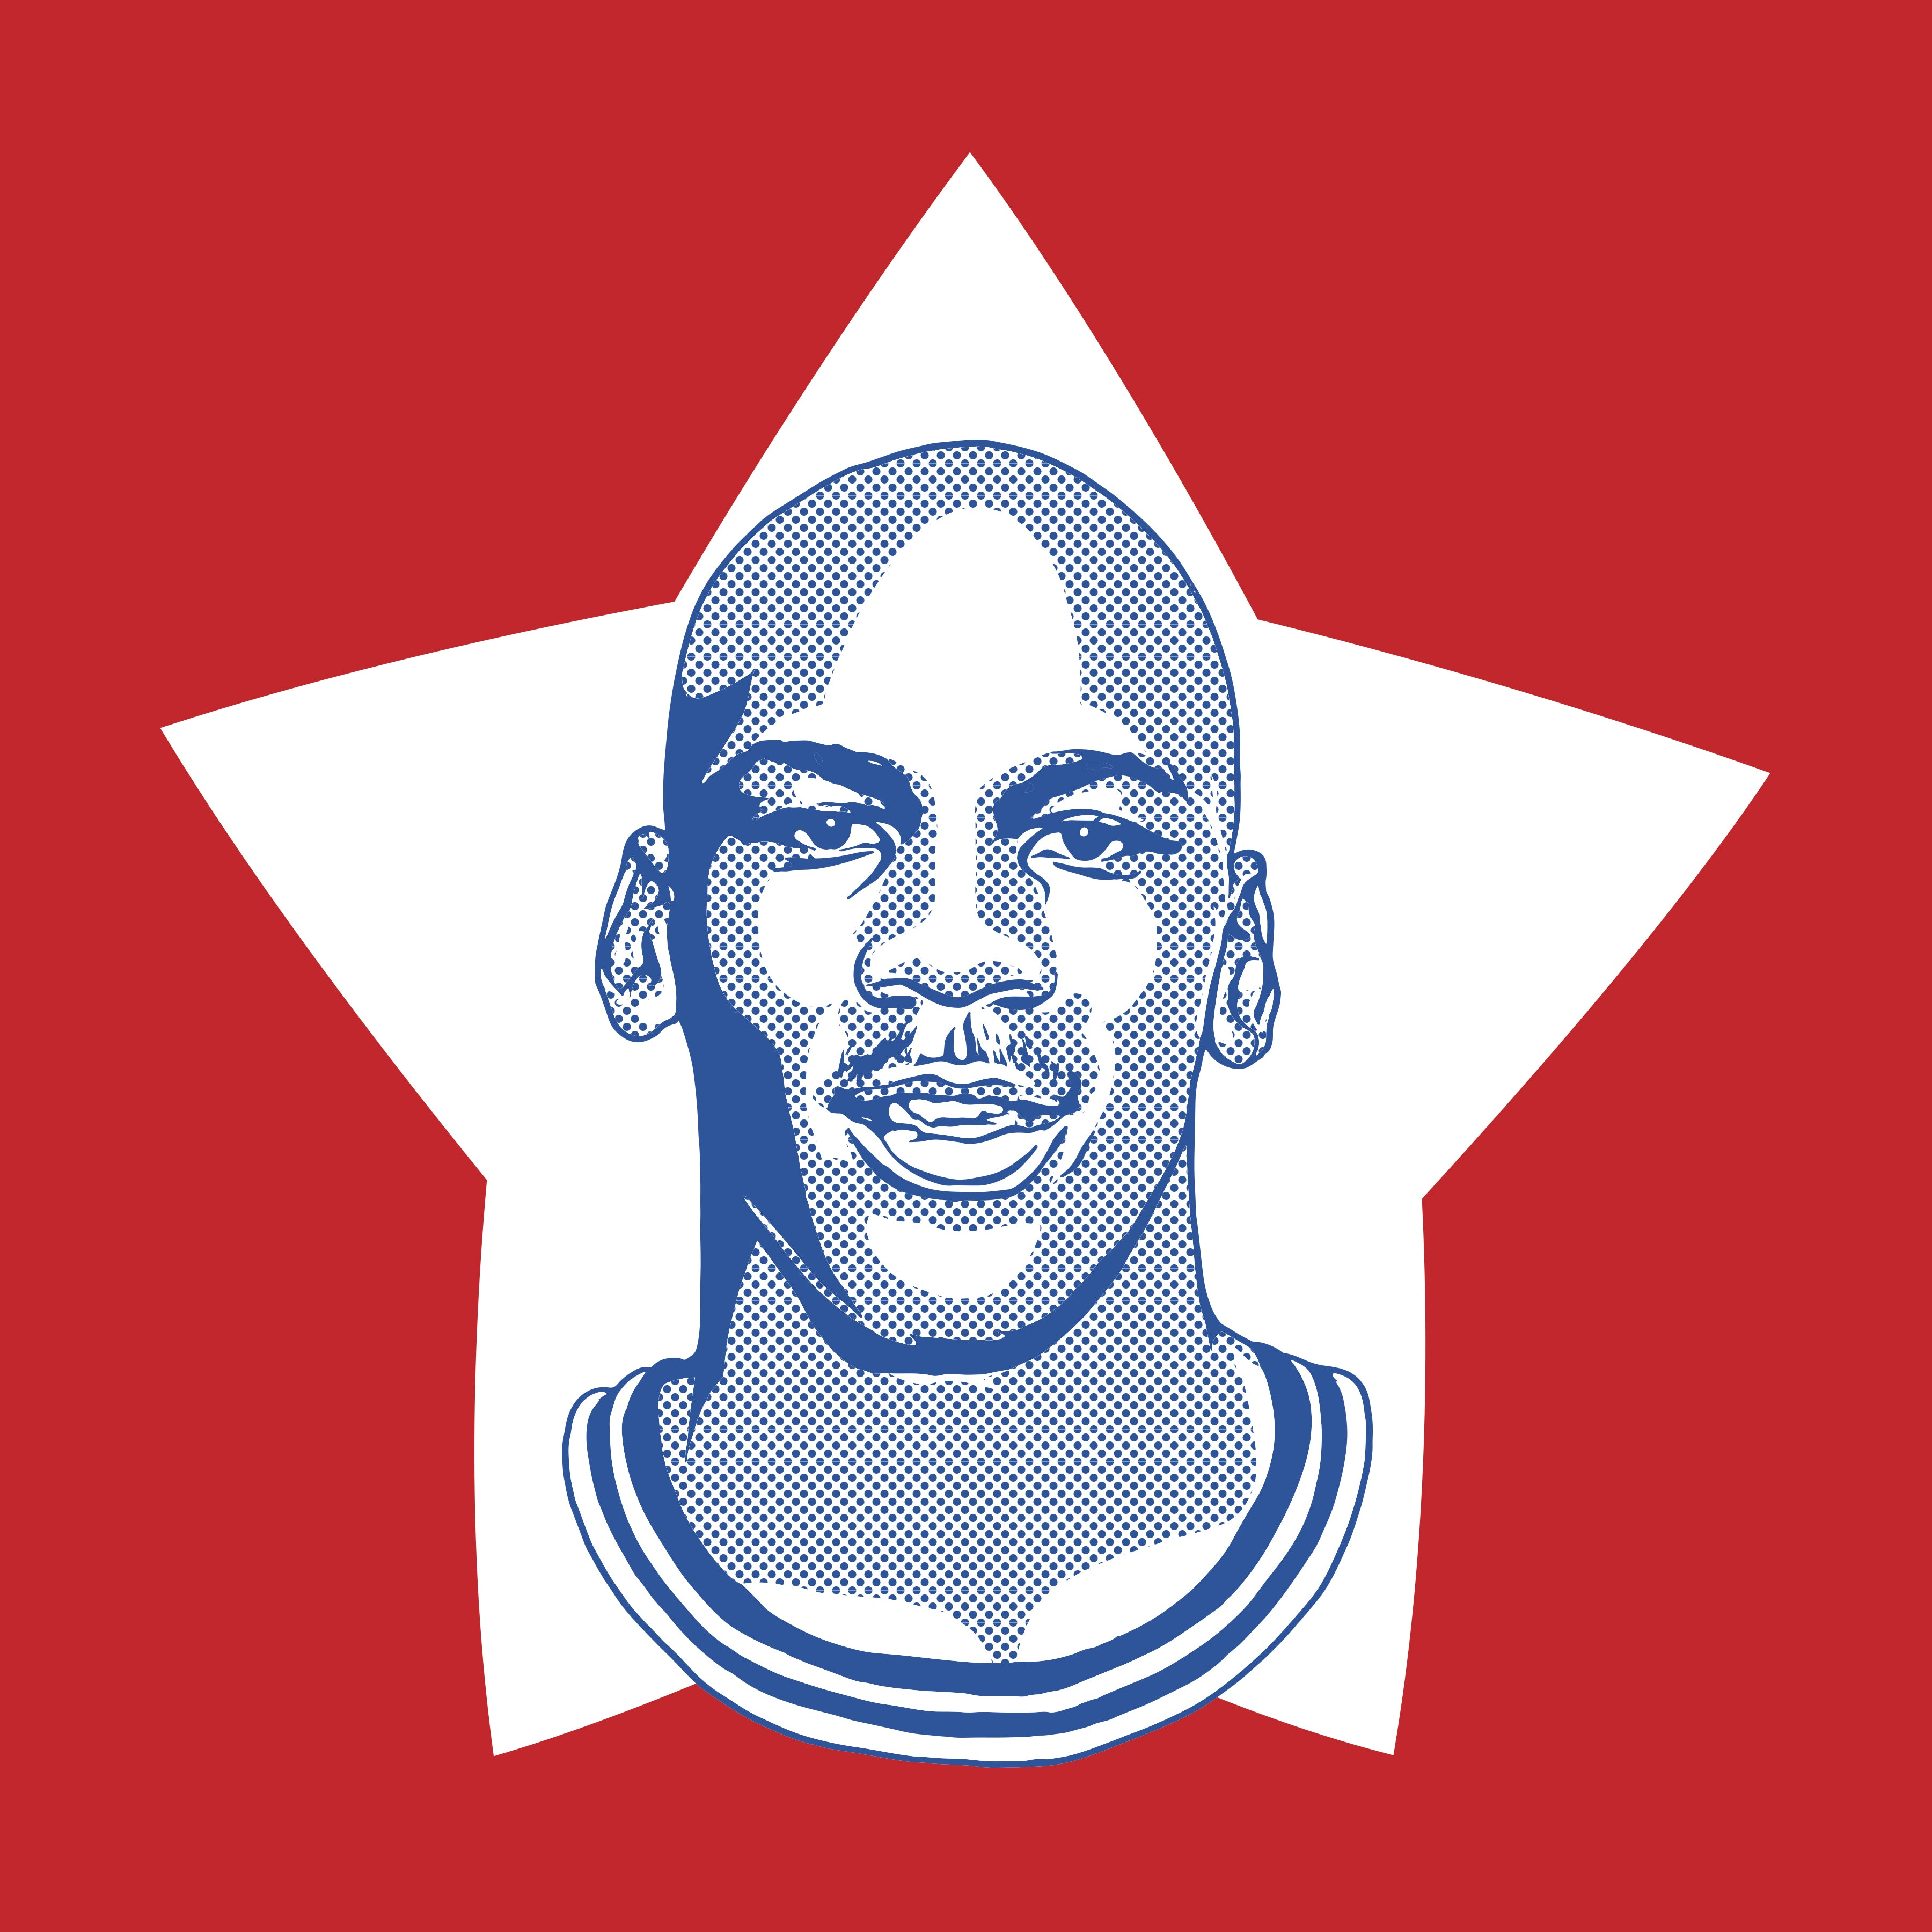 MVP Jordan Print by Adam Shortlidge